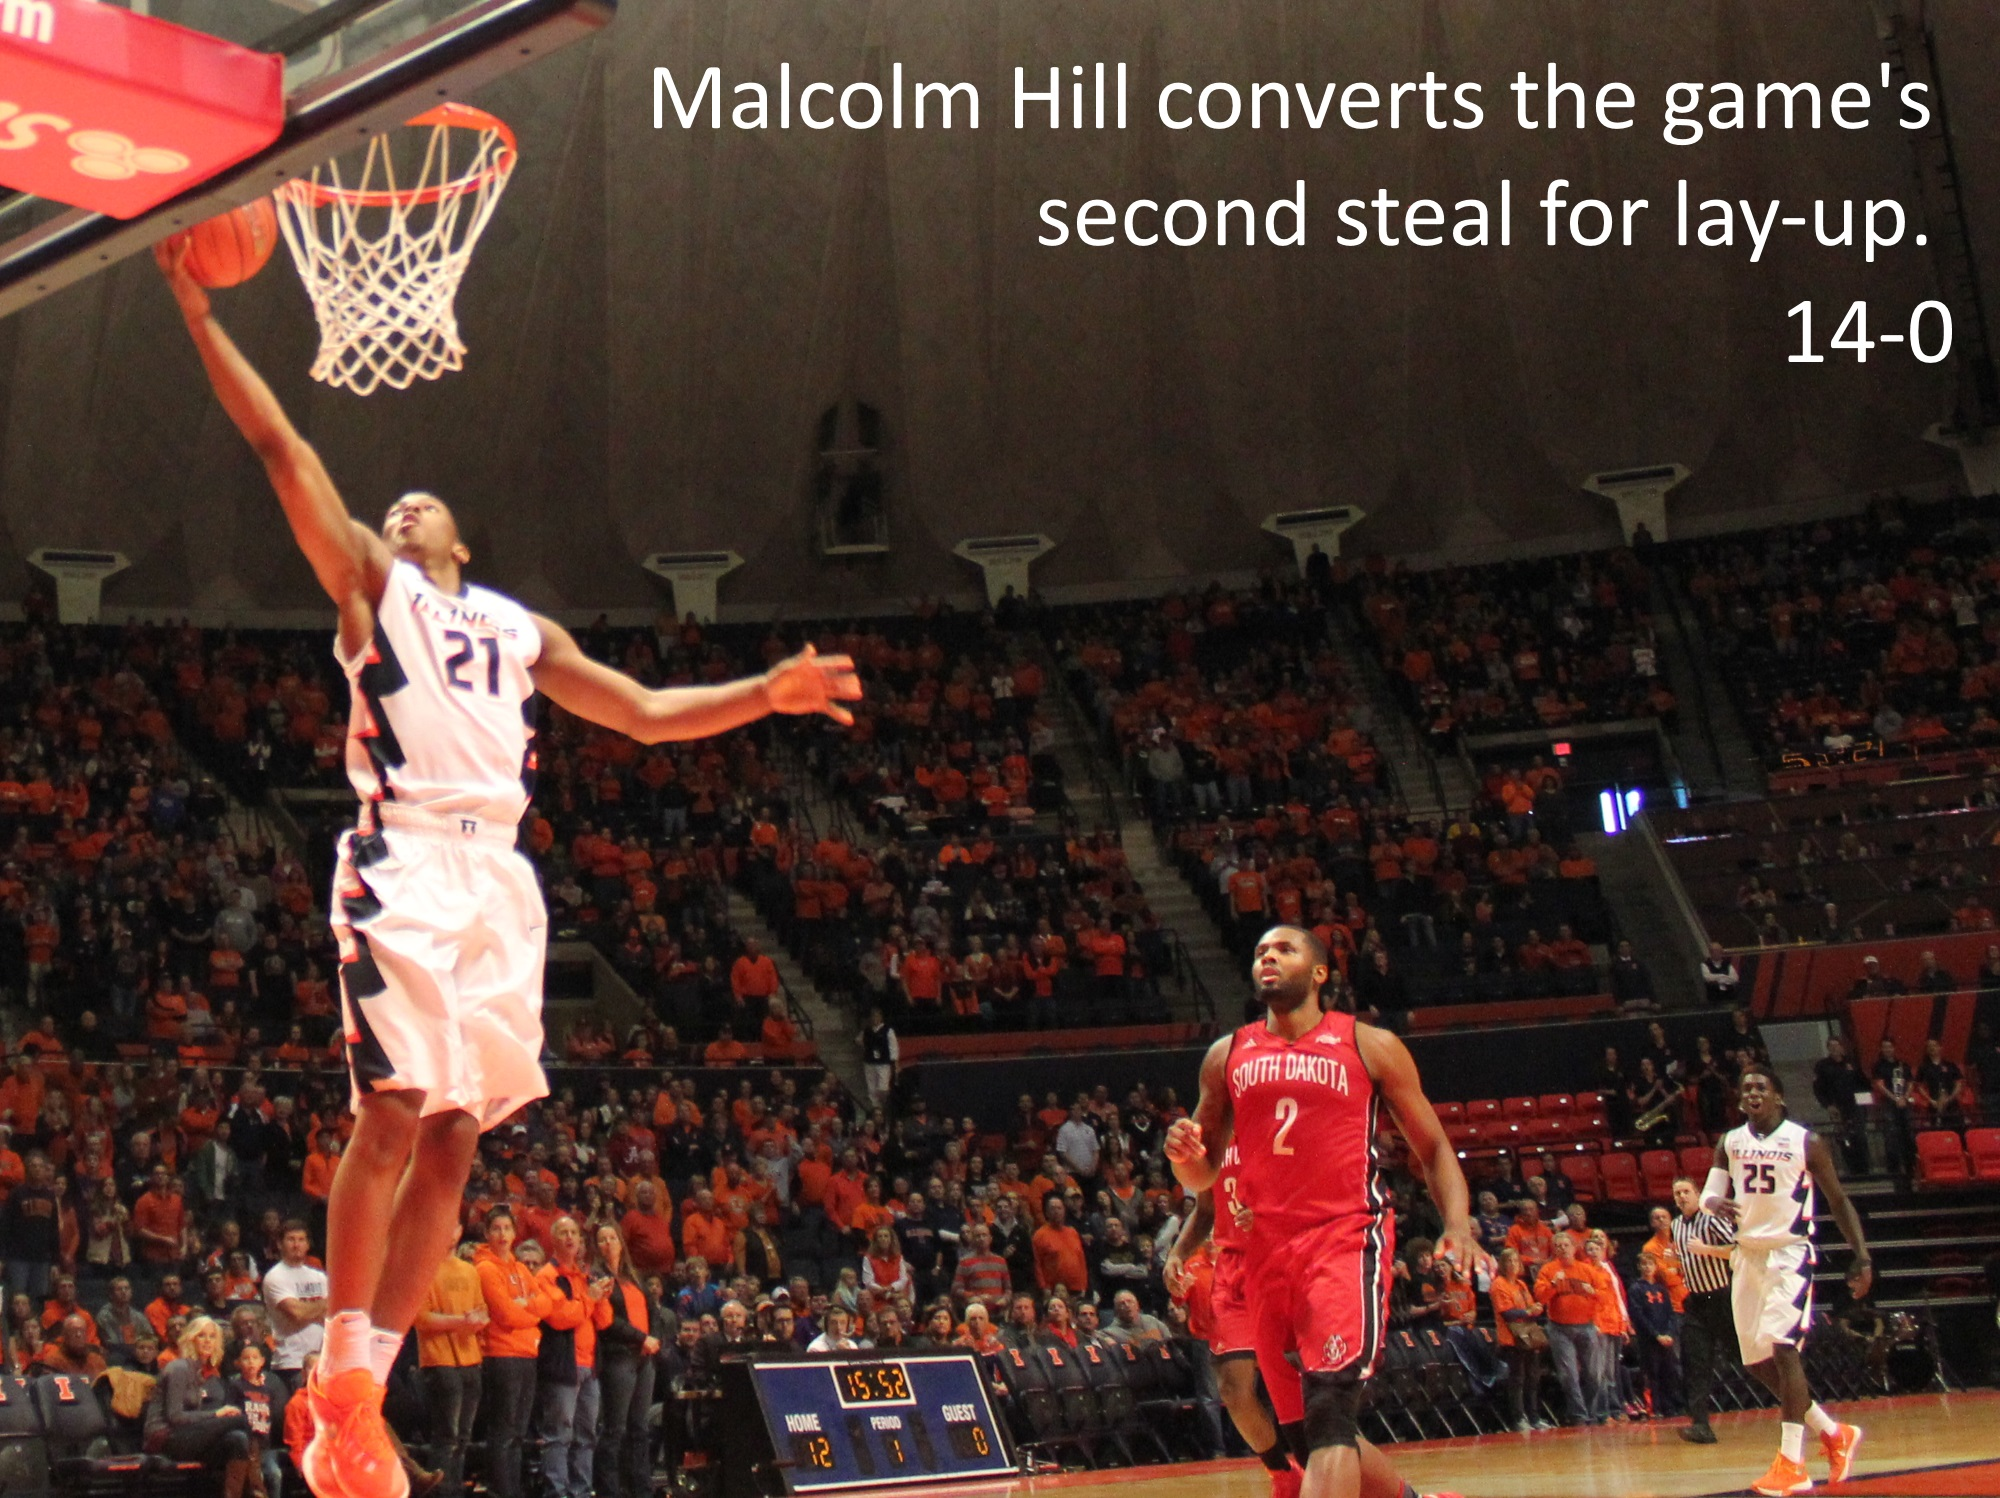 Malcolm Hill converts the game's second steal for lay-up 14-0